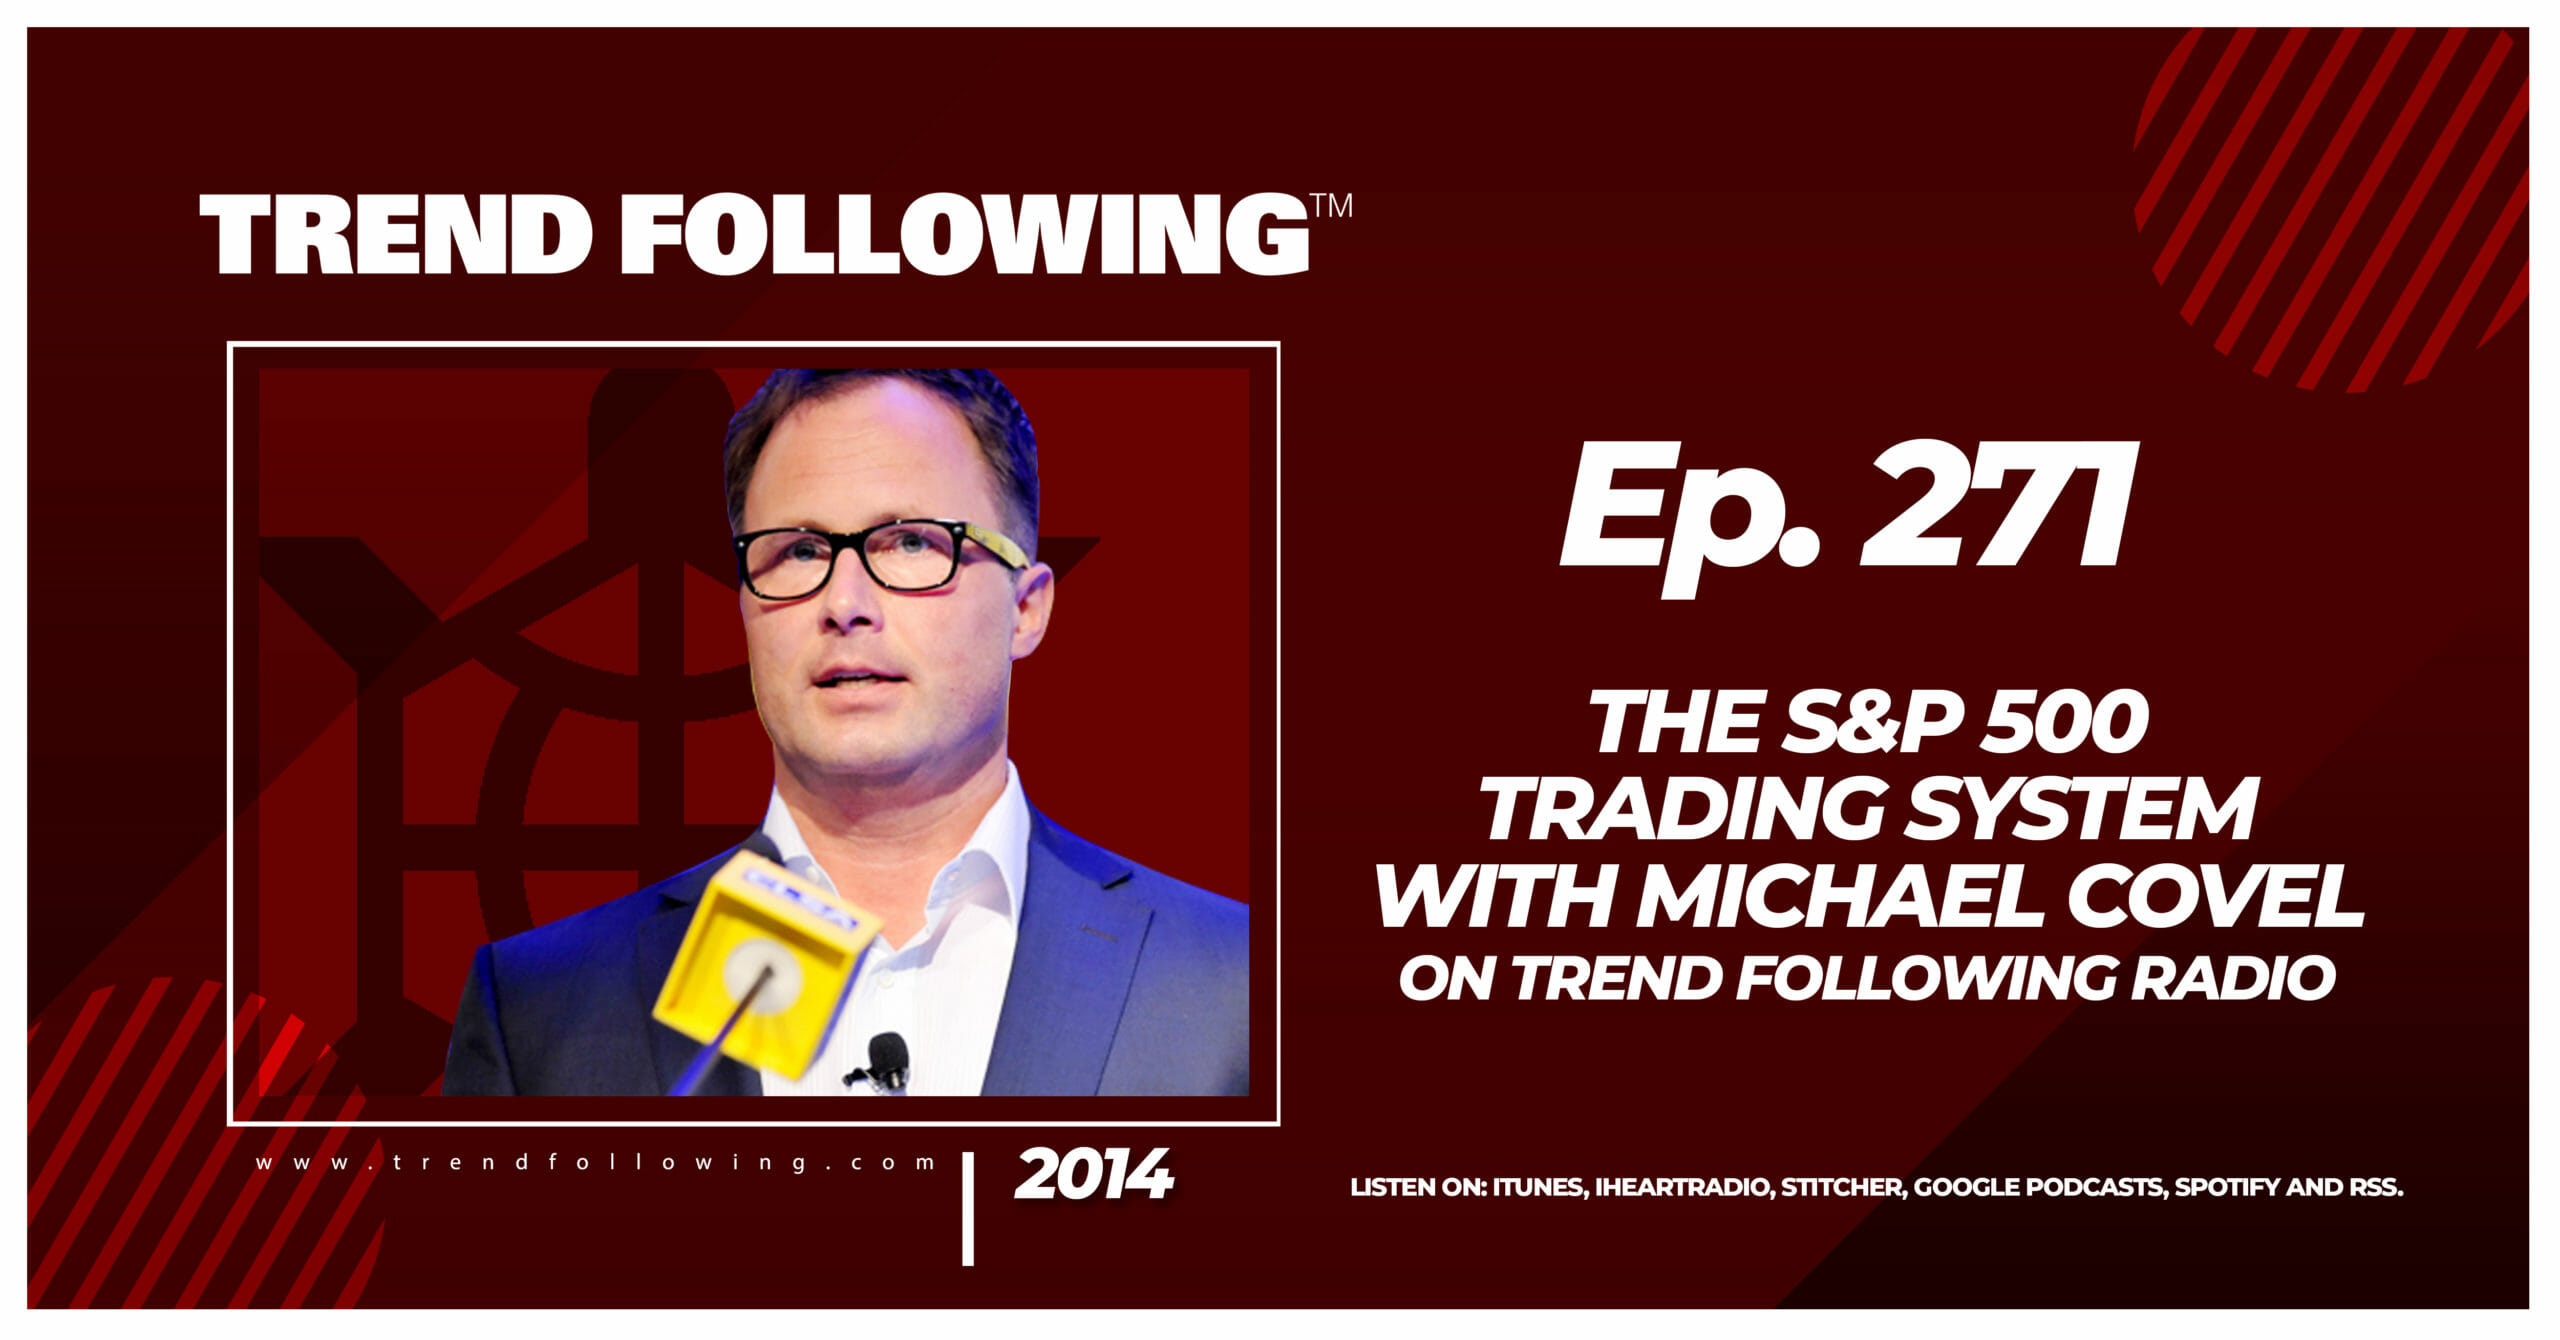 The S&P 500 Trading System with Michael Covel on Trend Following Radio